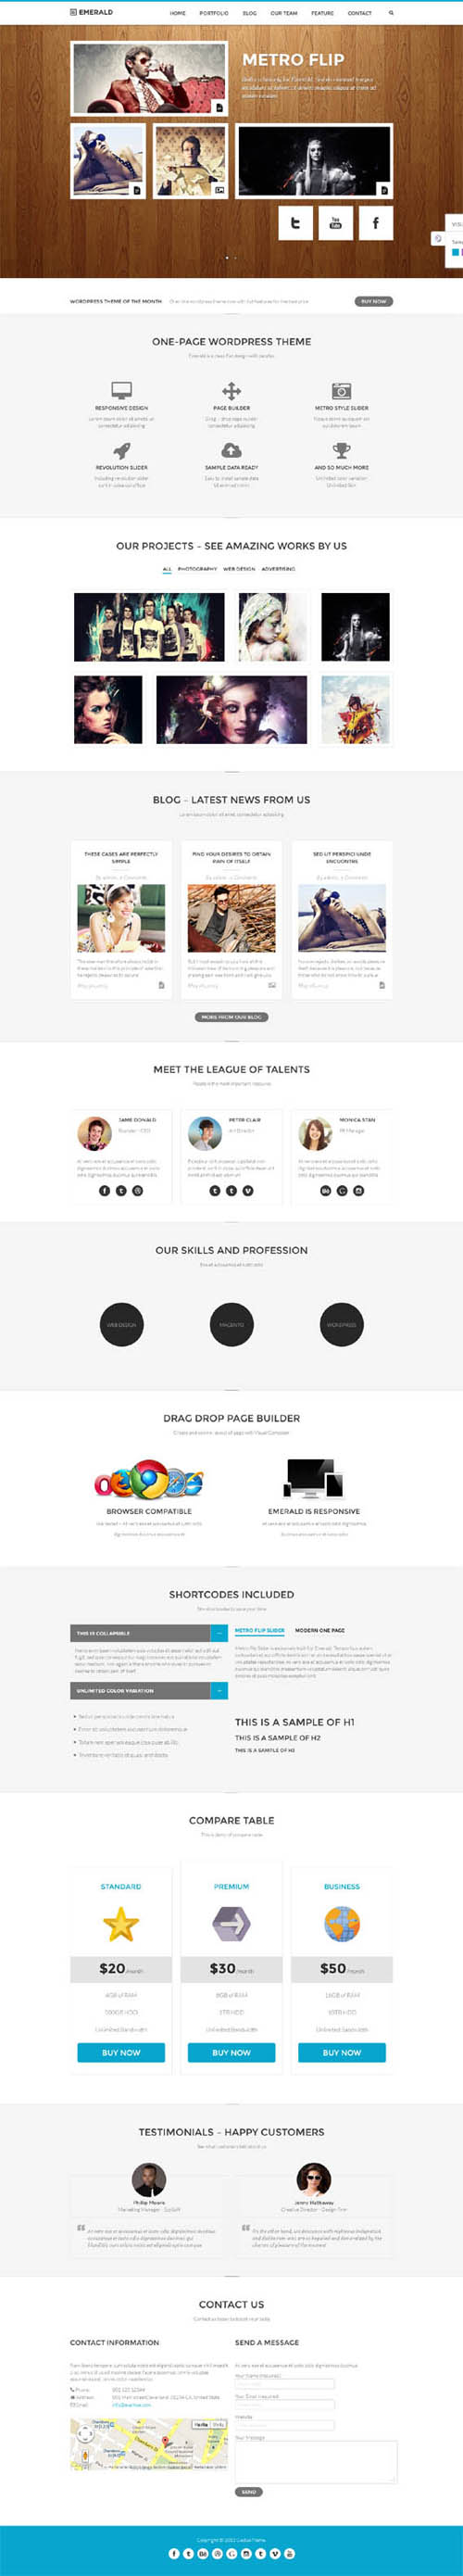 Emerald - Responsive Onepage WordPress Theme